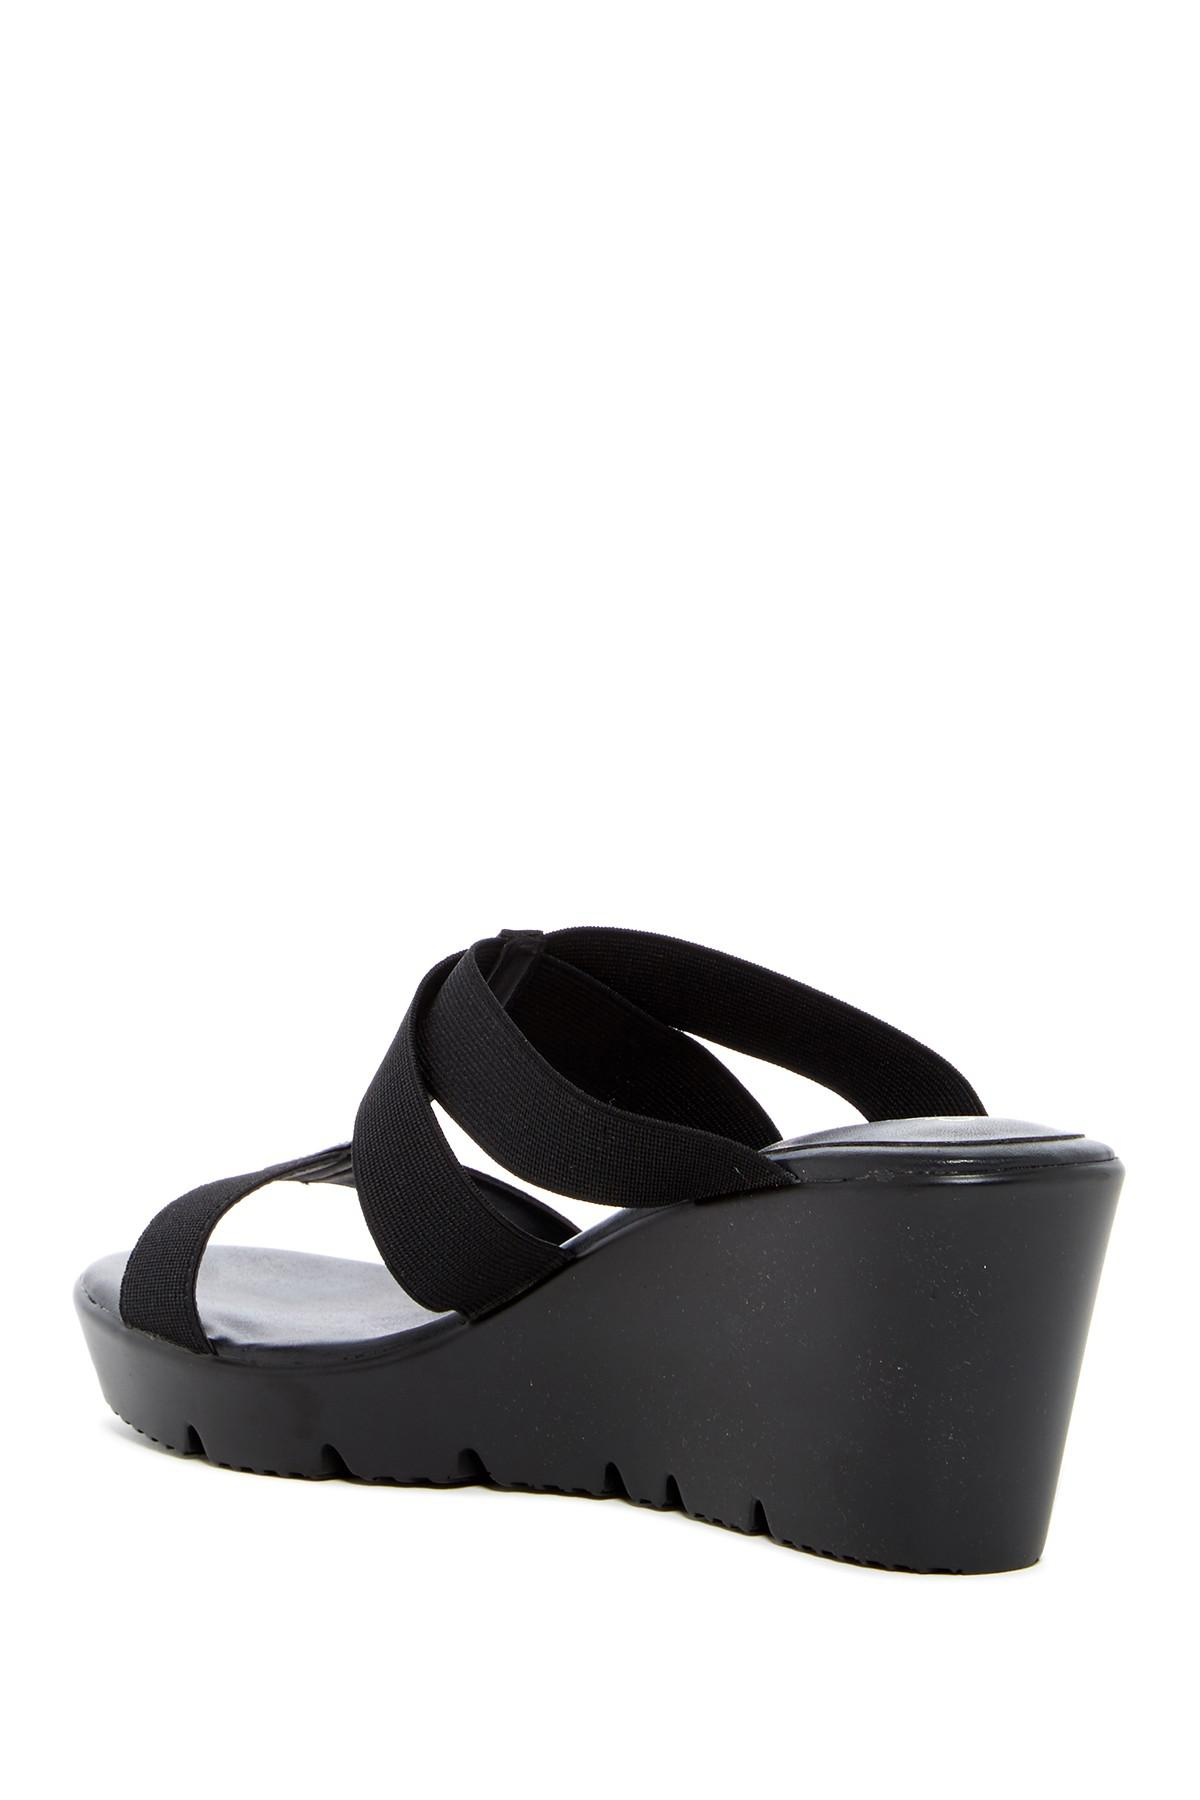 edca95b5a6b Lyst - Charles David Veep Wedge Sandal in Black